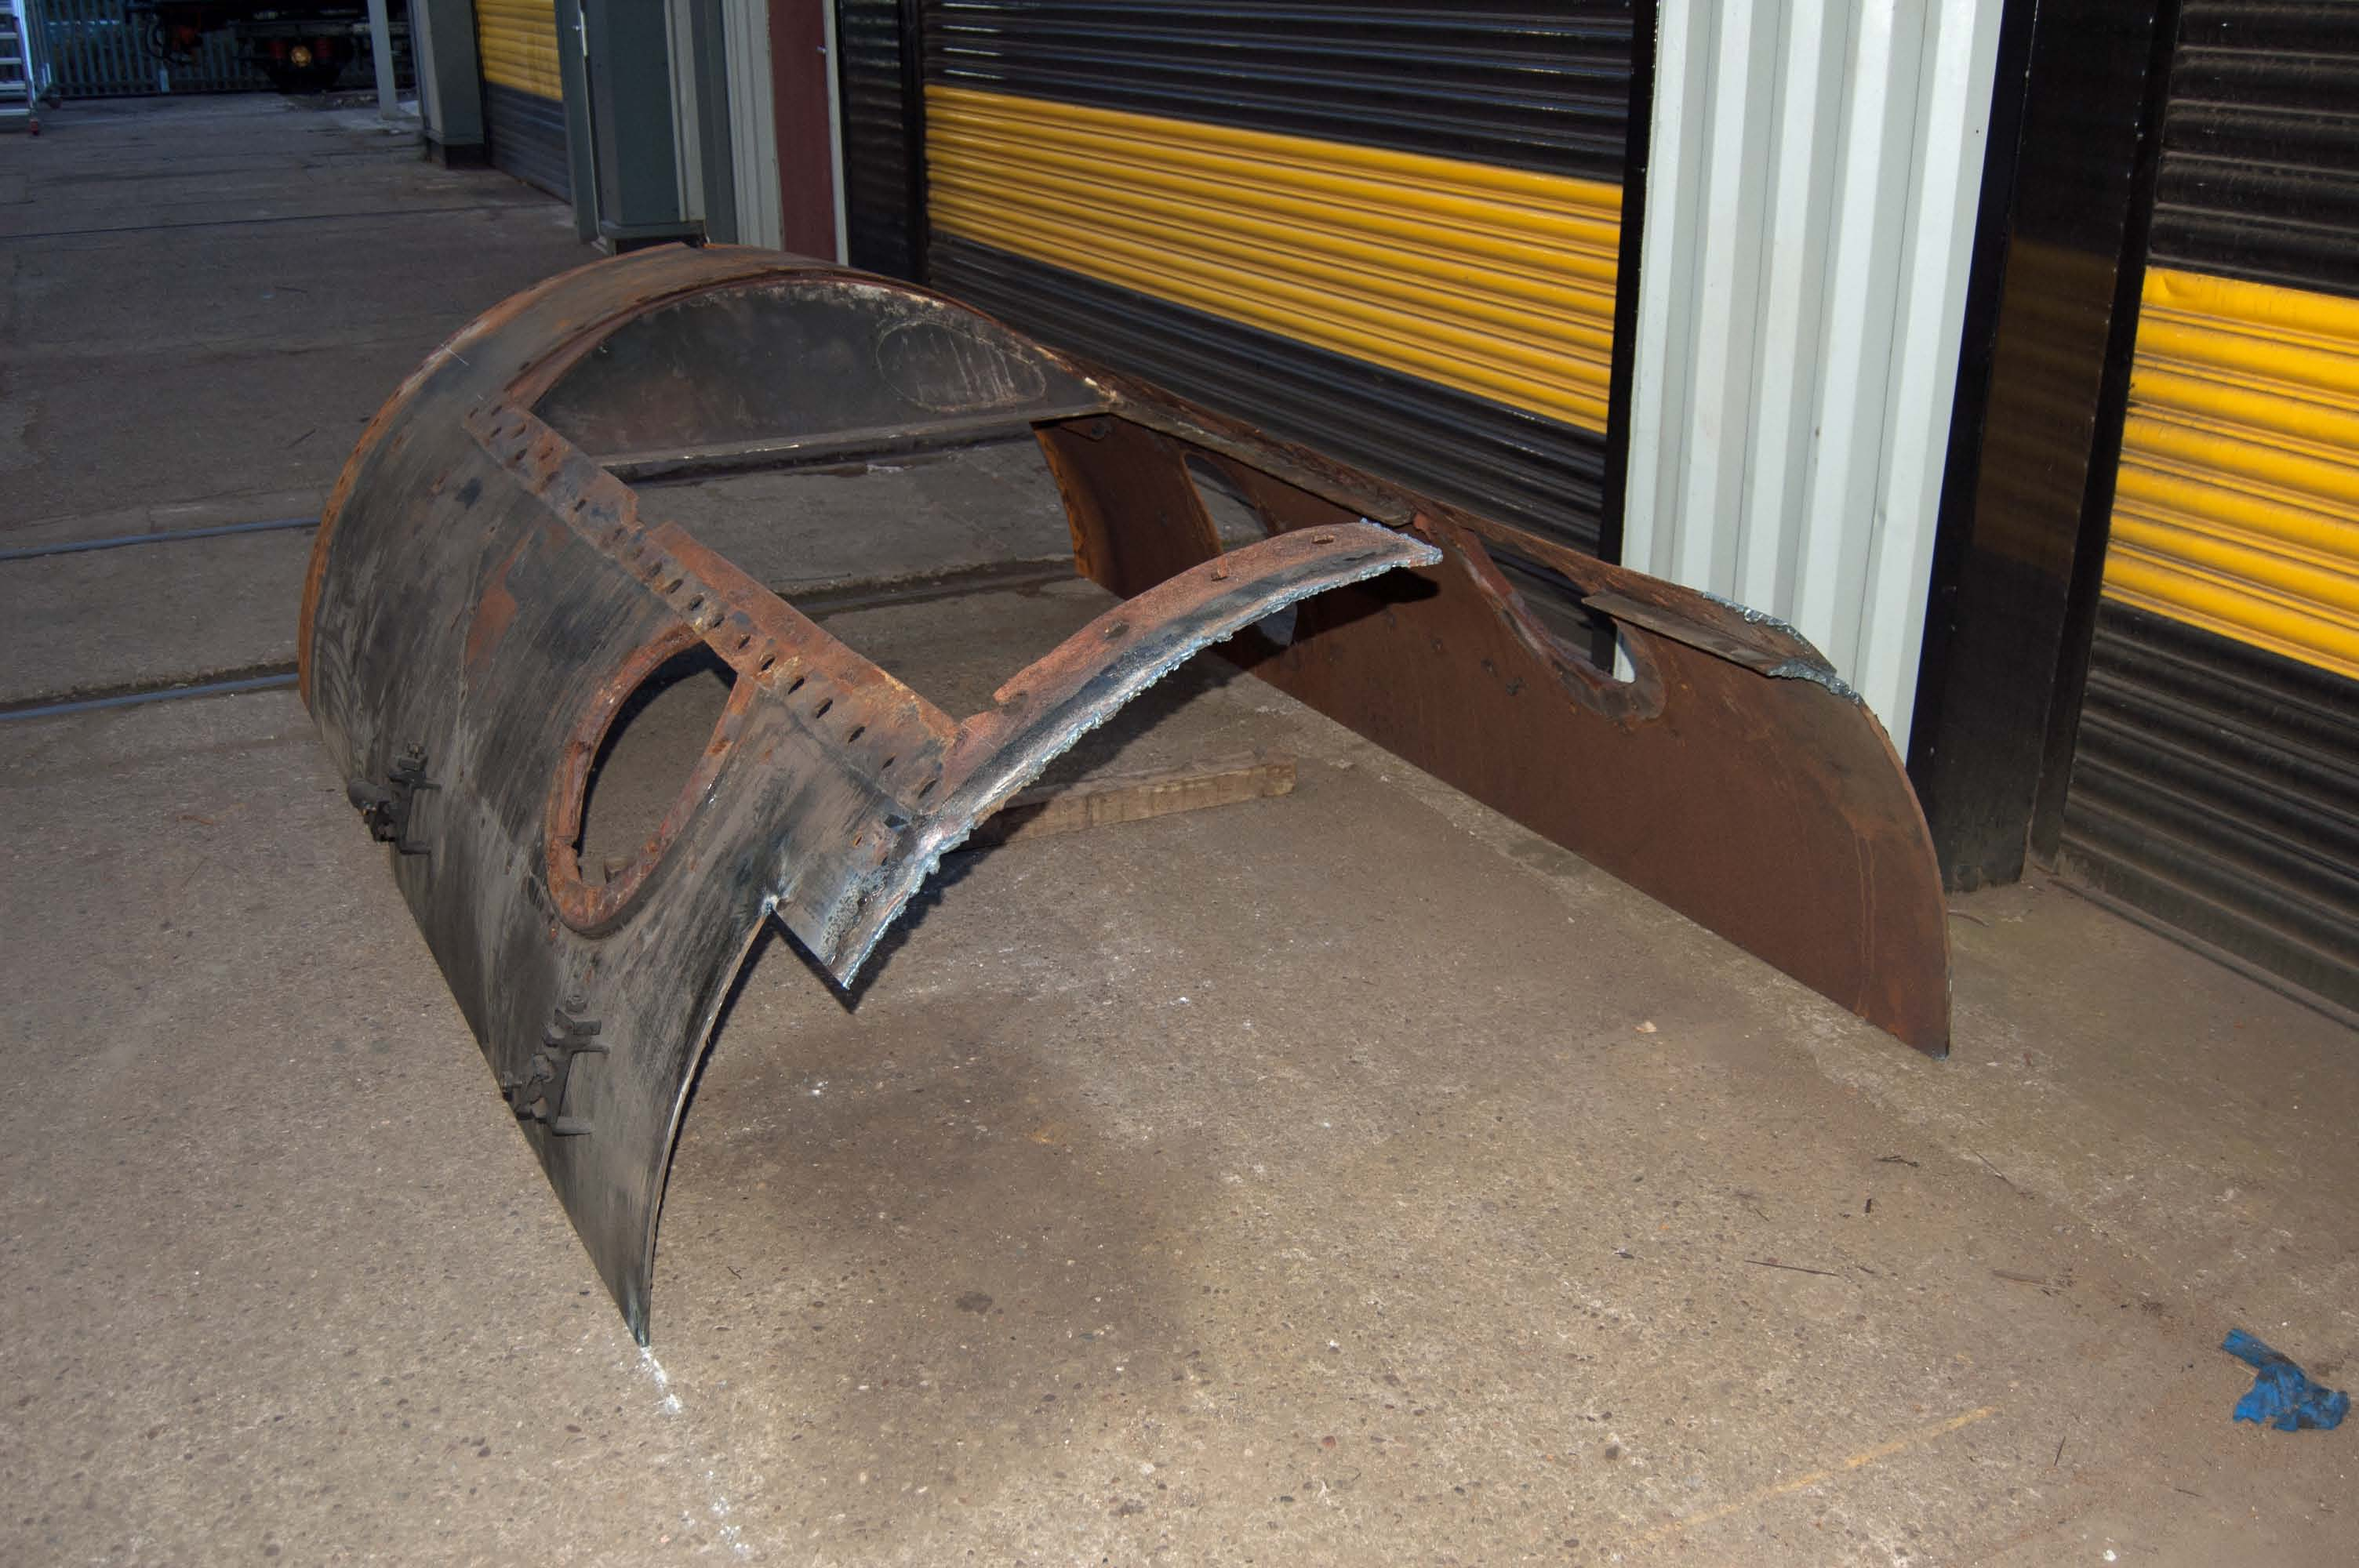 The bottom part of the smokebox is corroded and needs replacing. It is easier, and no more expensive, to replace the whole bottom half. This is the old bottom half.